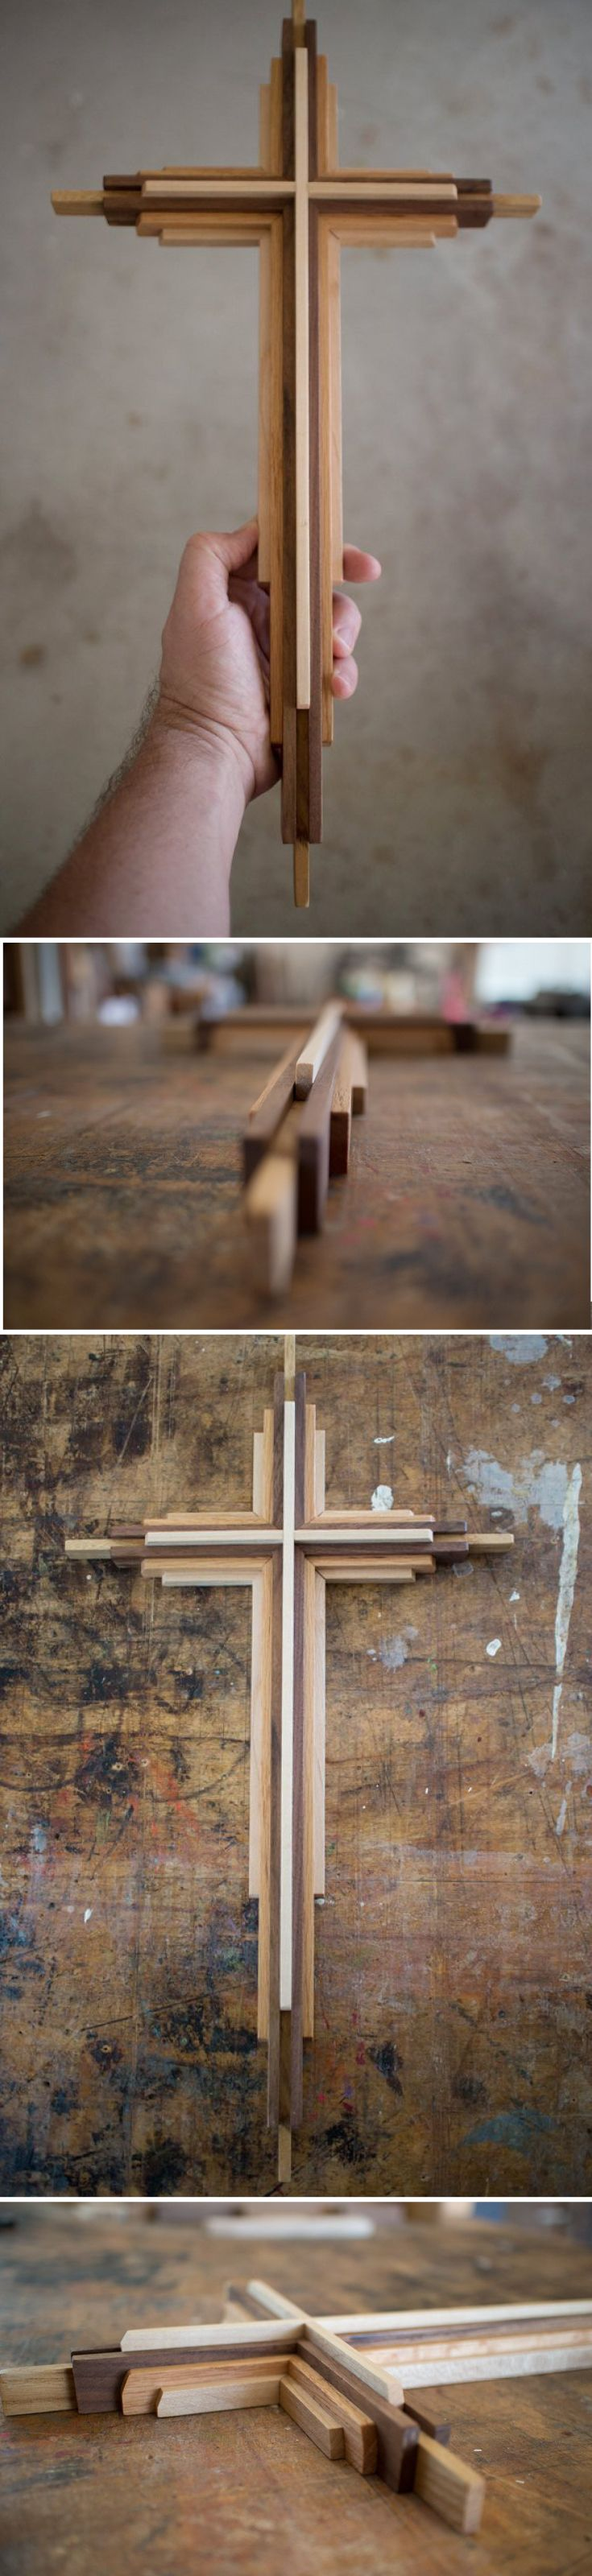 Diy 20 Inch Tall Wooden Cross Plans This Cross Is Handmade From